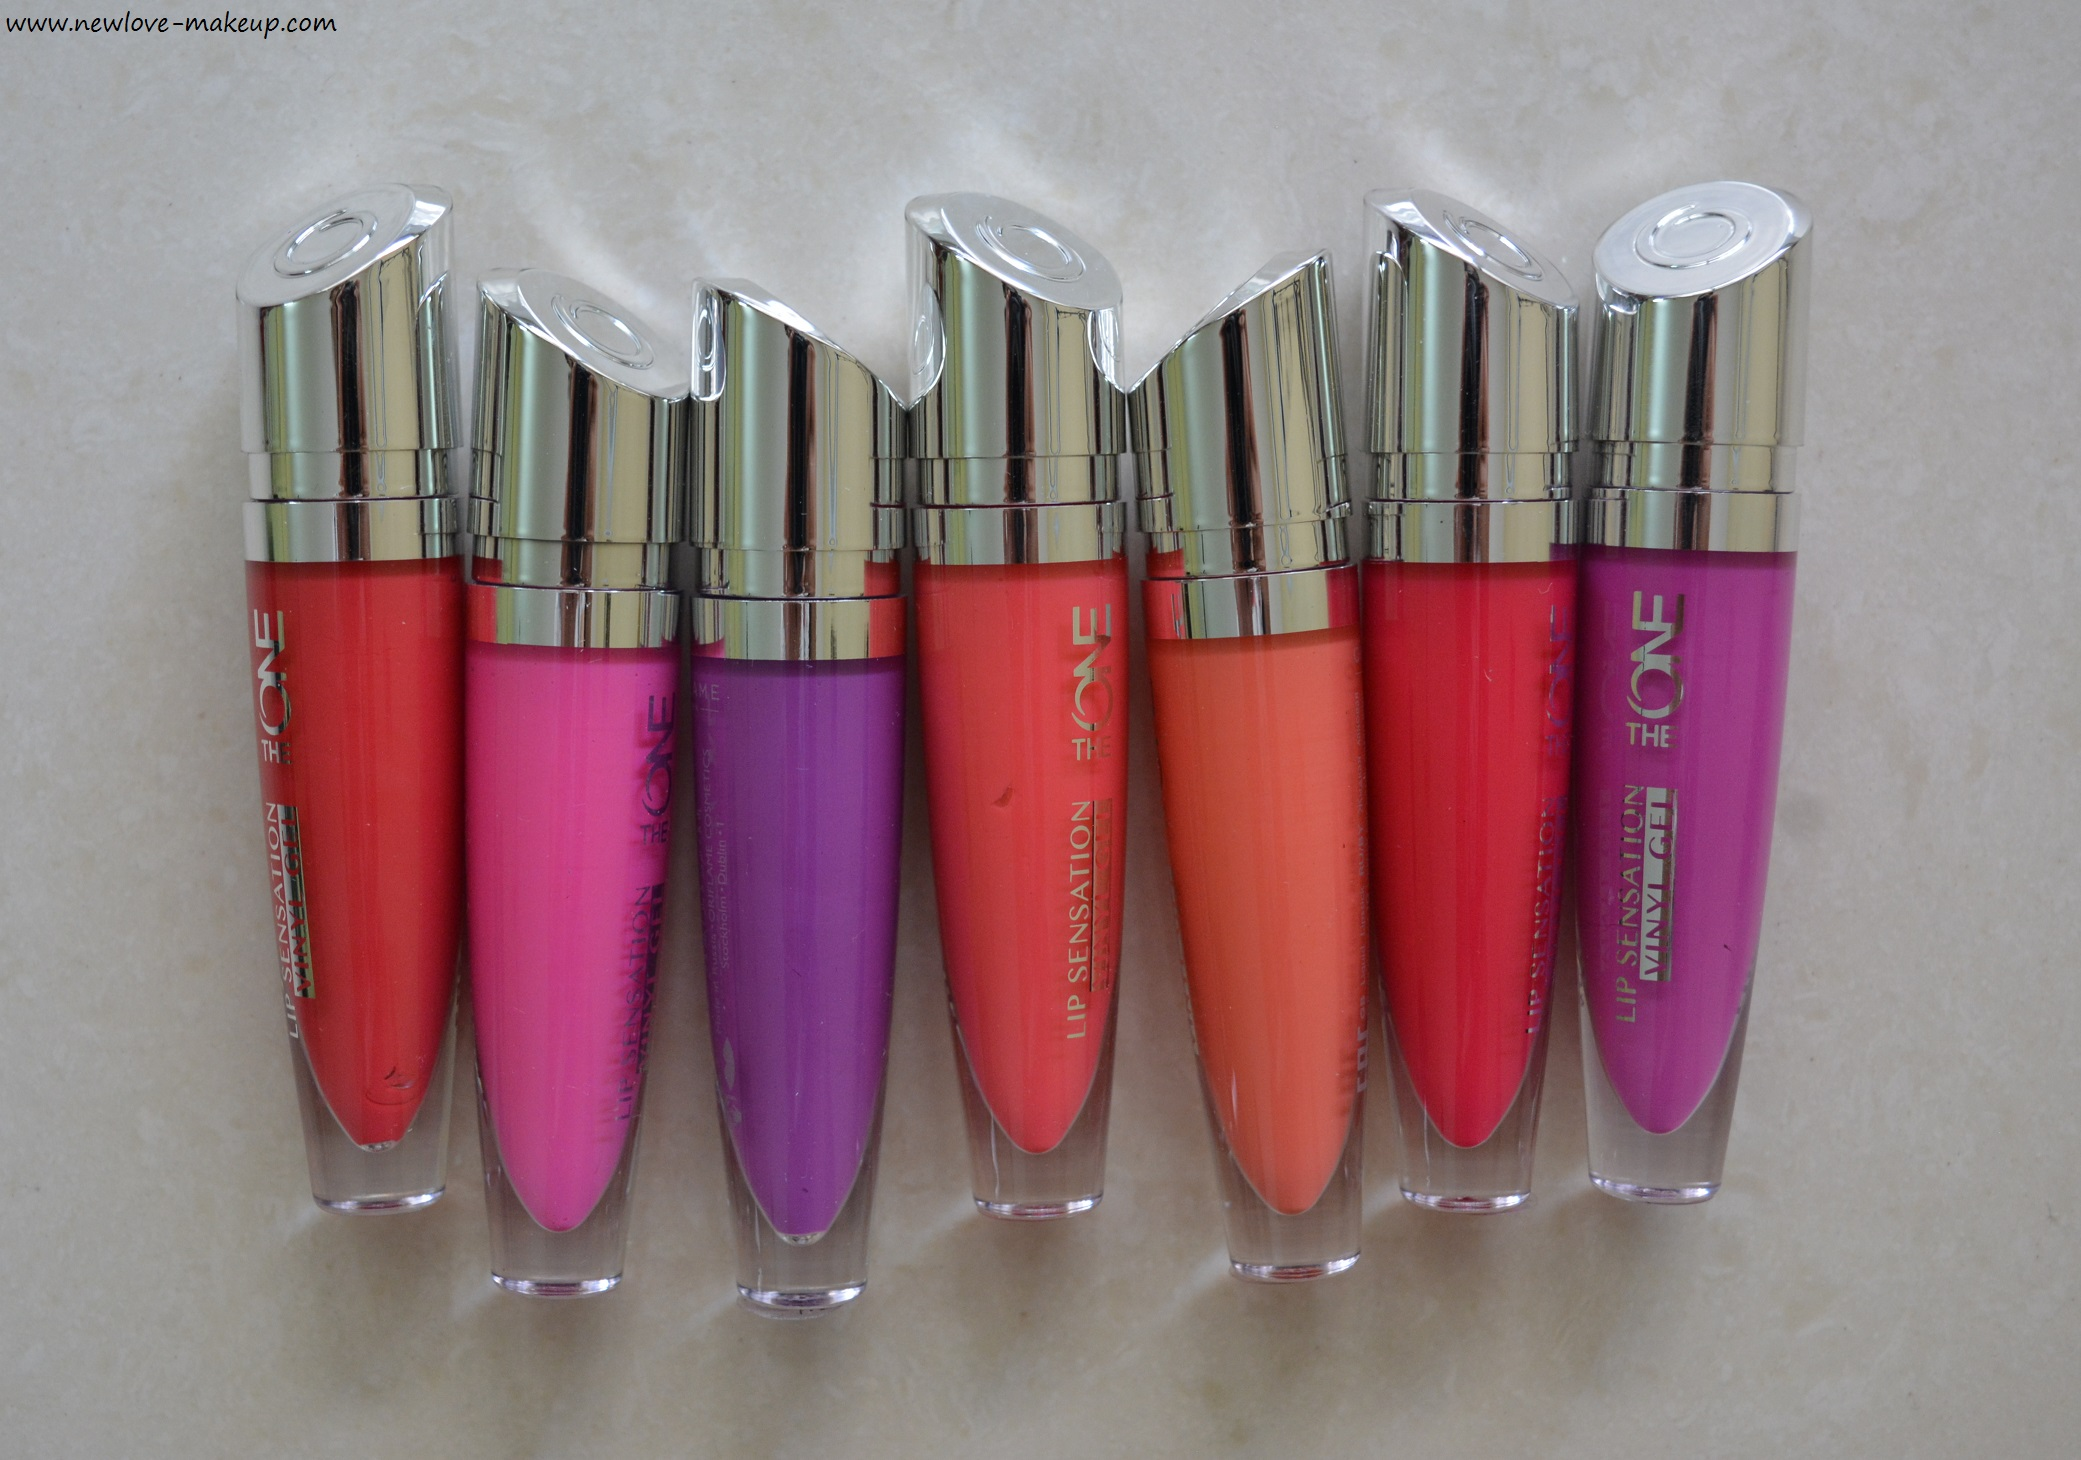 Oriflame The One Lip Sensation Vinyl Gel Review Swatches New Love Makeup